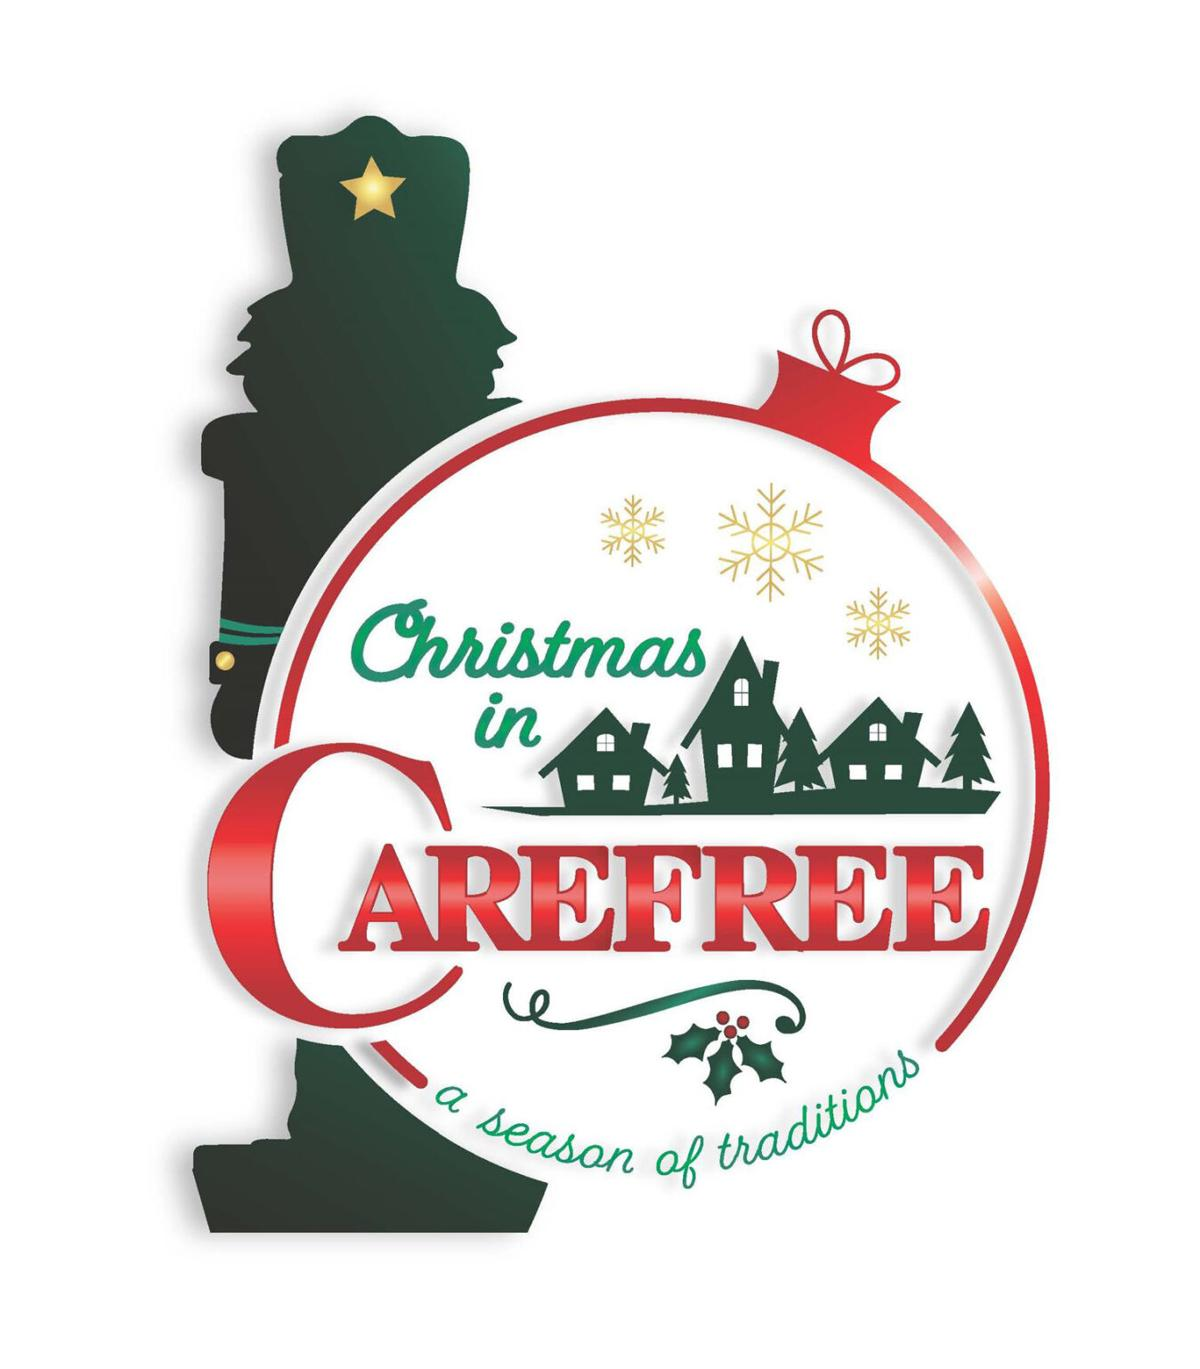 Christmas-in-Carefree-logo-2017